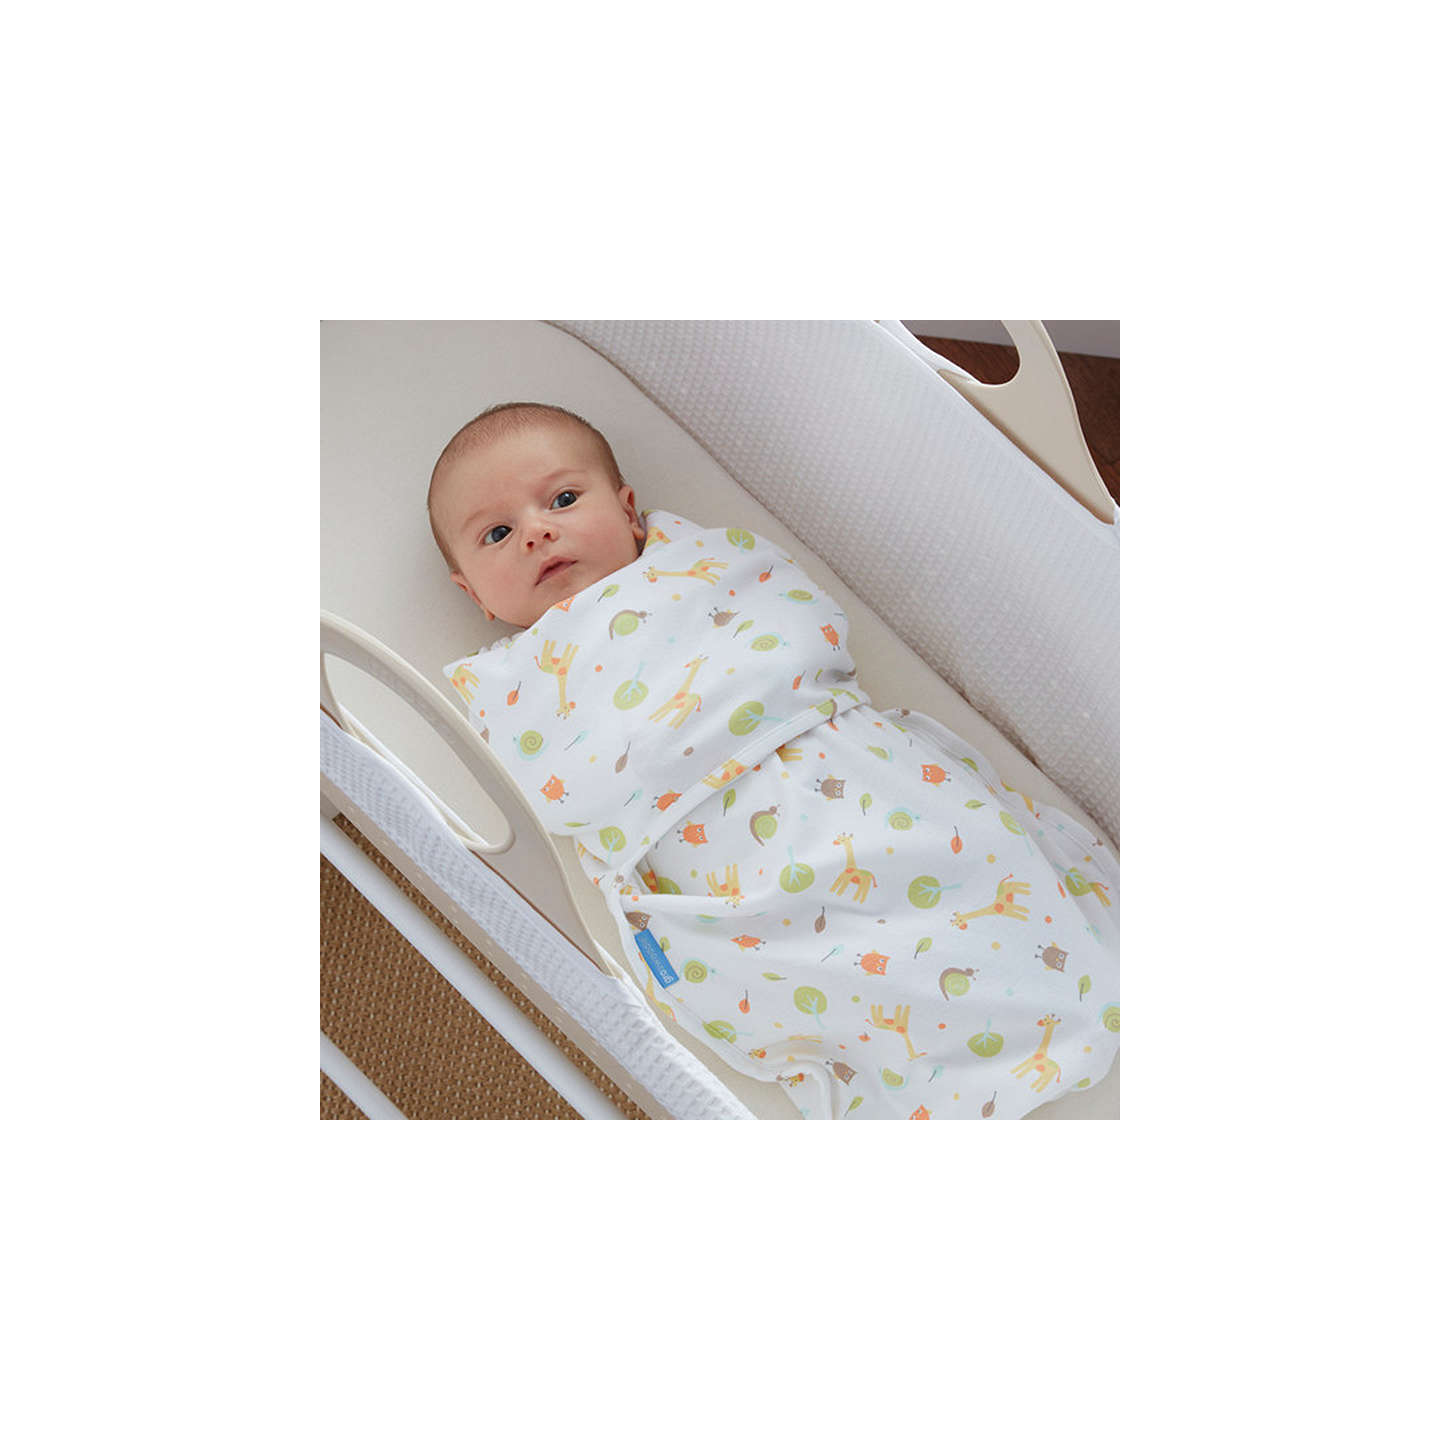 BuyGro Company Giraffe Swaddle Blanket Online at johnlewis.com